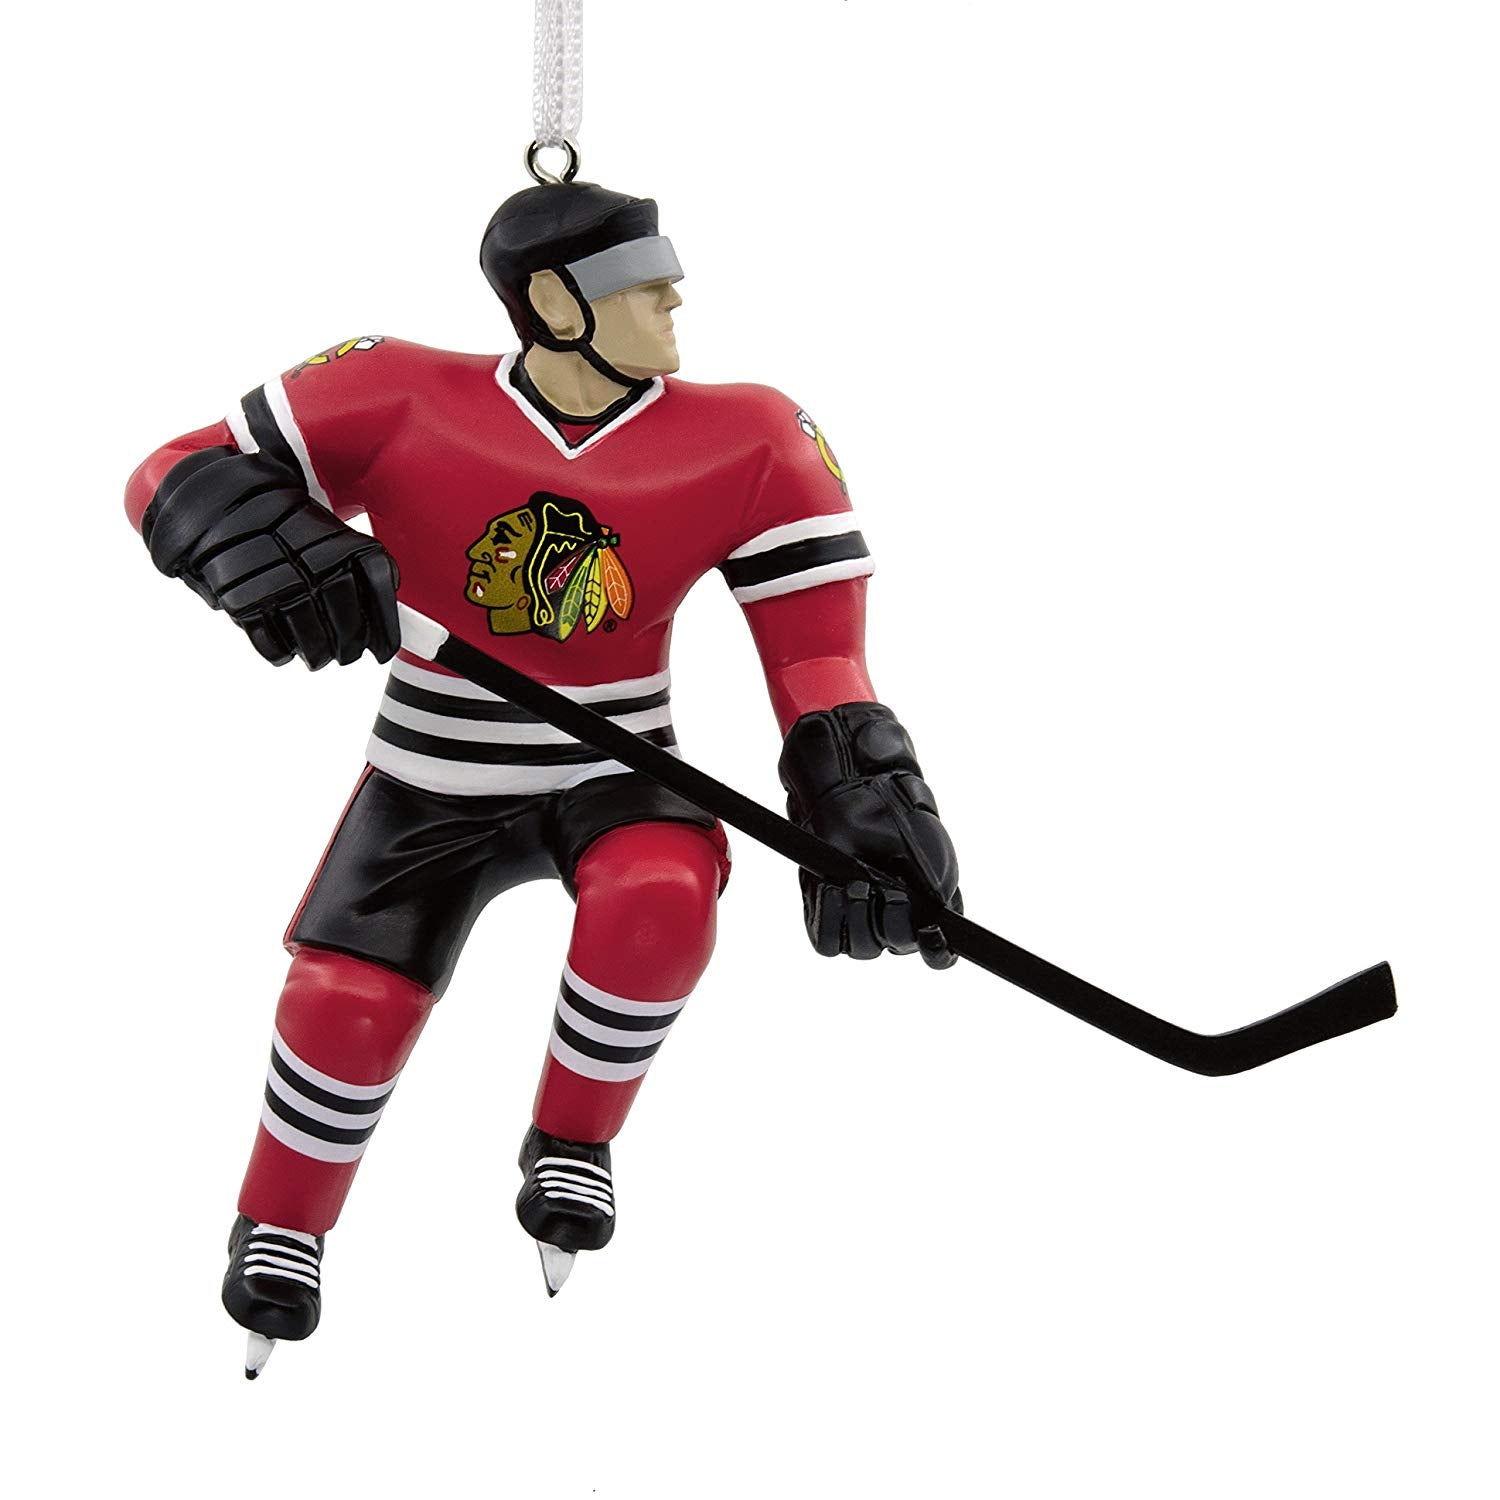 NHL Chicago Blackhawks Hallmark Ornament - Sons of Hockey